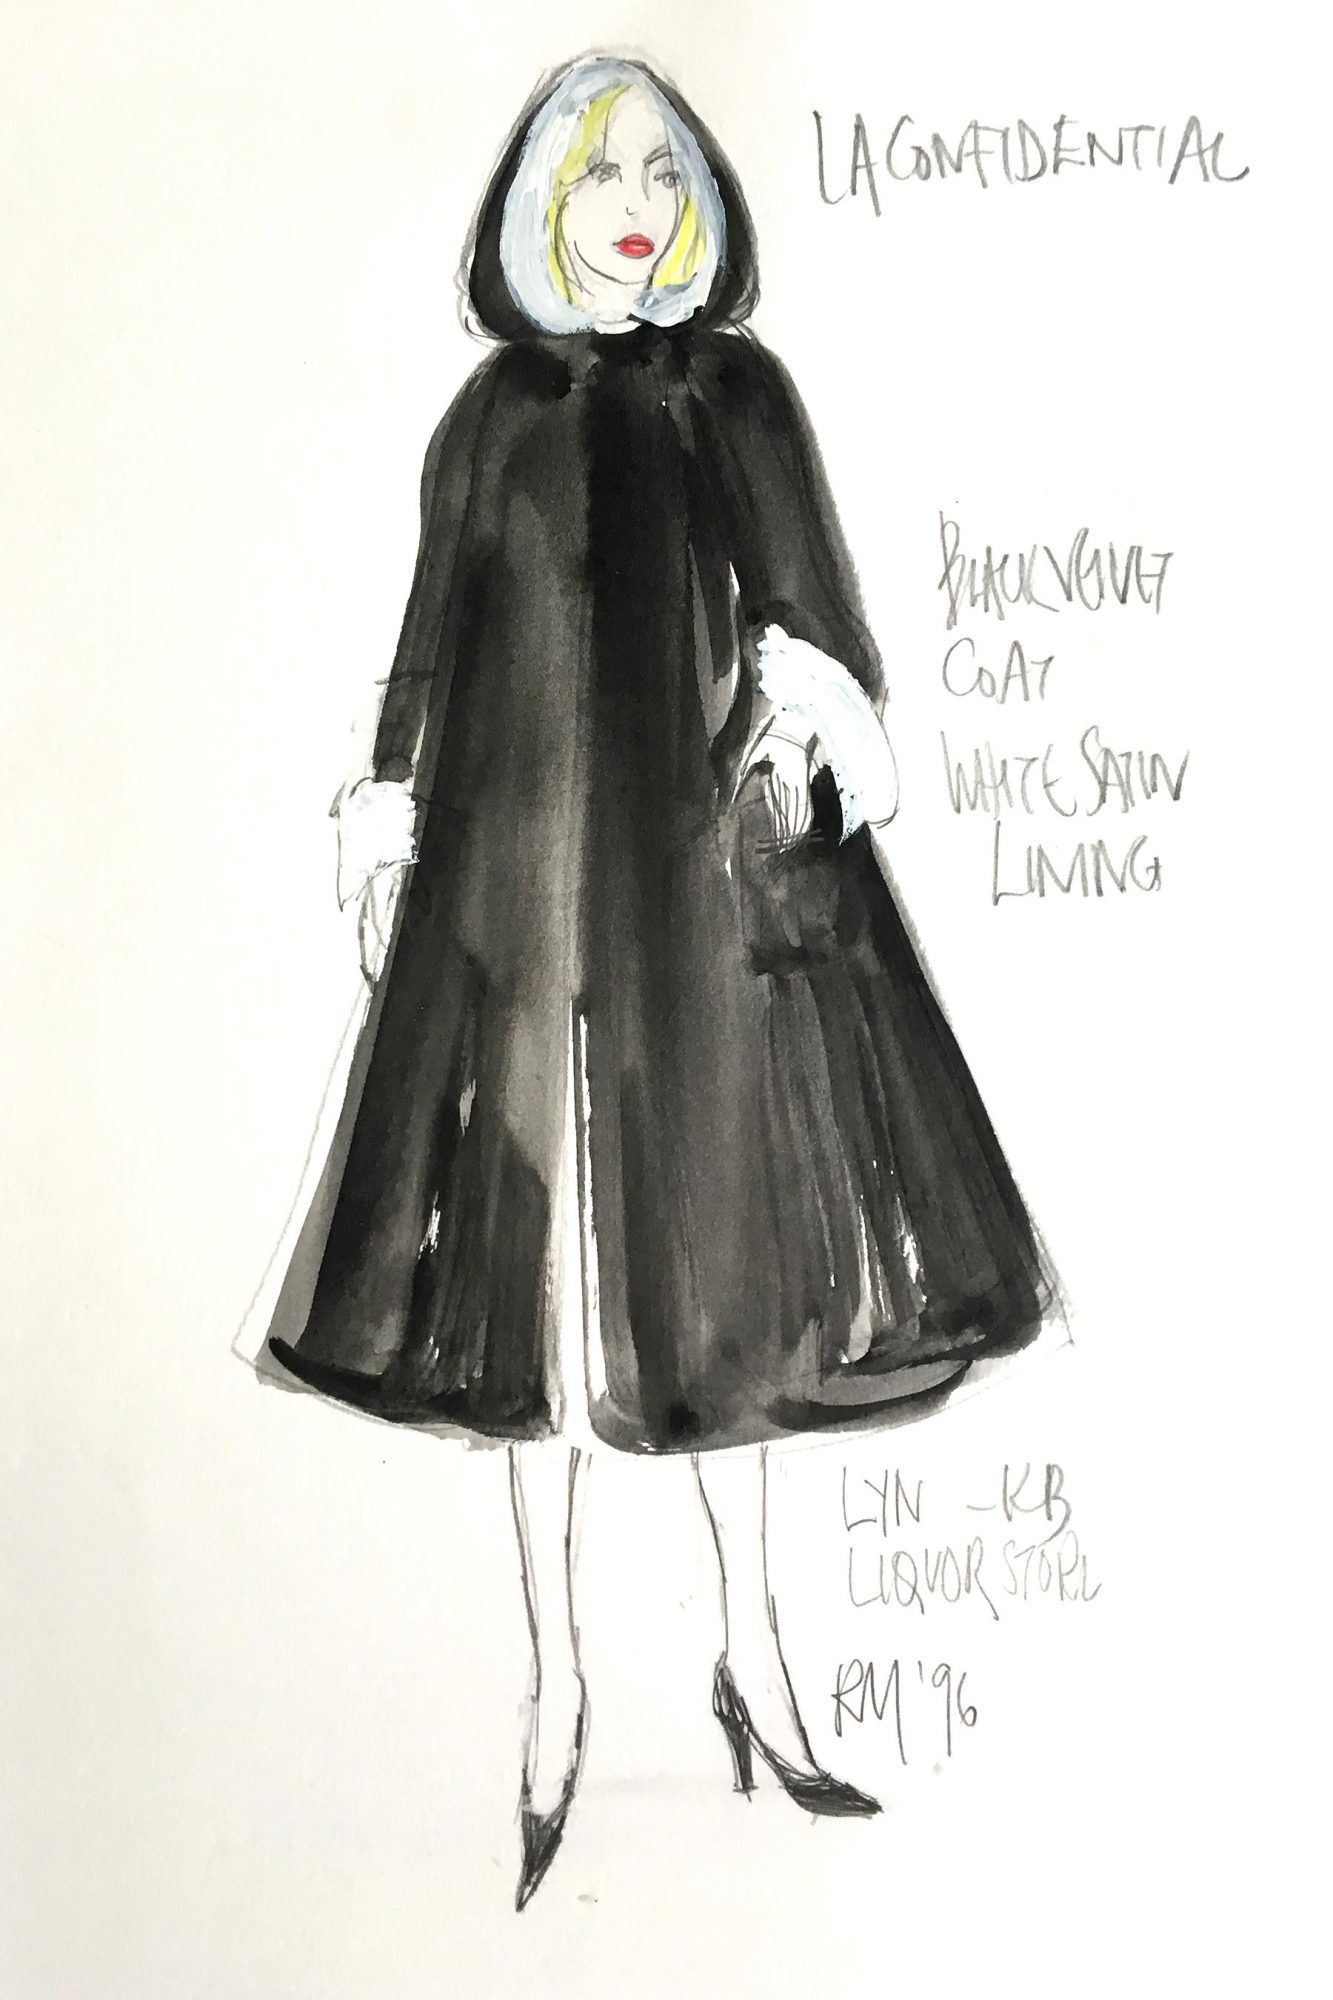 Ruth Myers L.A. Confidential costume sketches